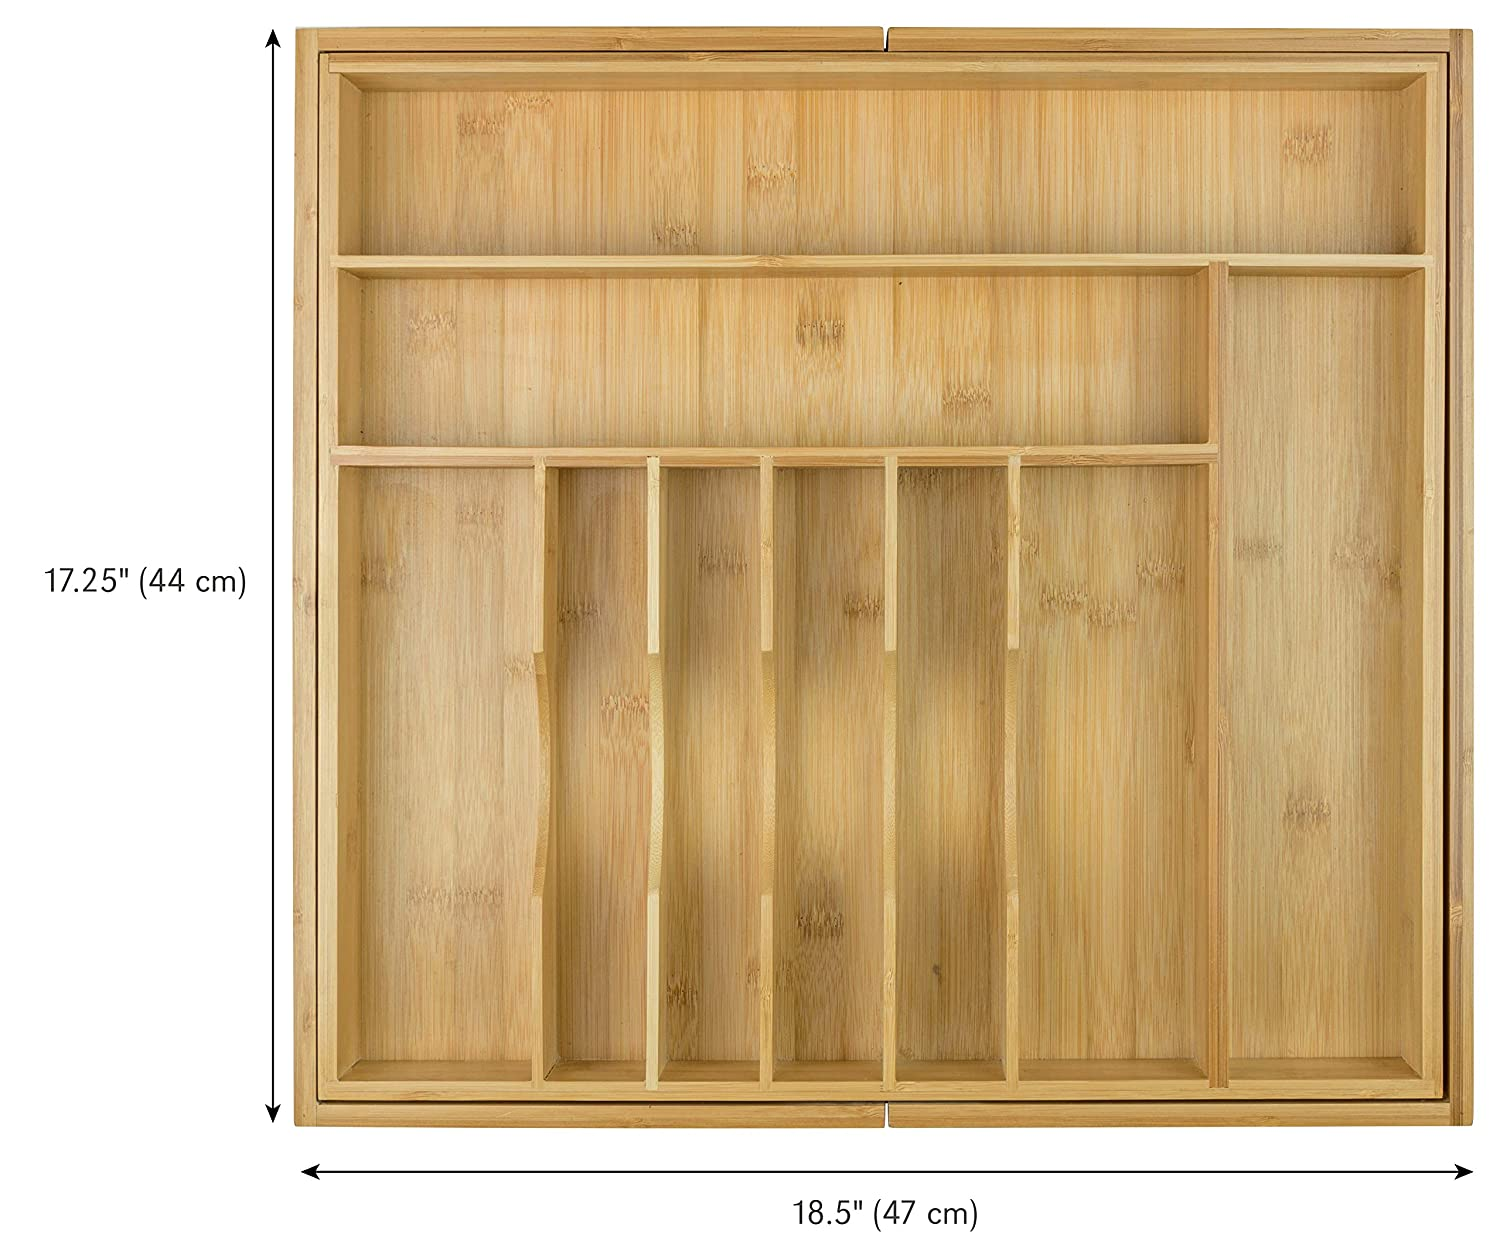 10 Compartments Flatware and Utensil Organizer for Kitchen Drawers Expandable to 25 Inches Wide KitchenEdge Premium Silverware 100/% Bamboo